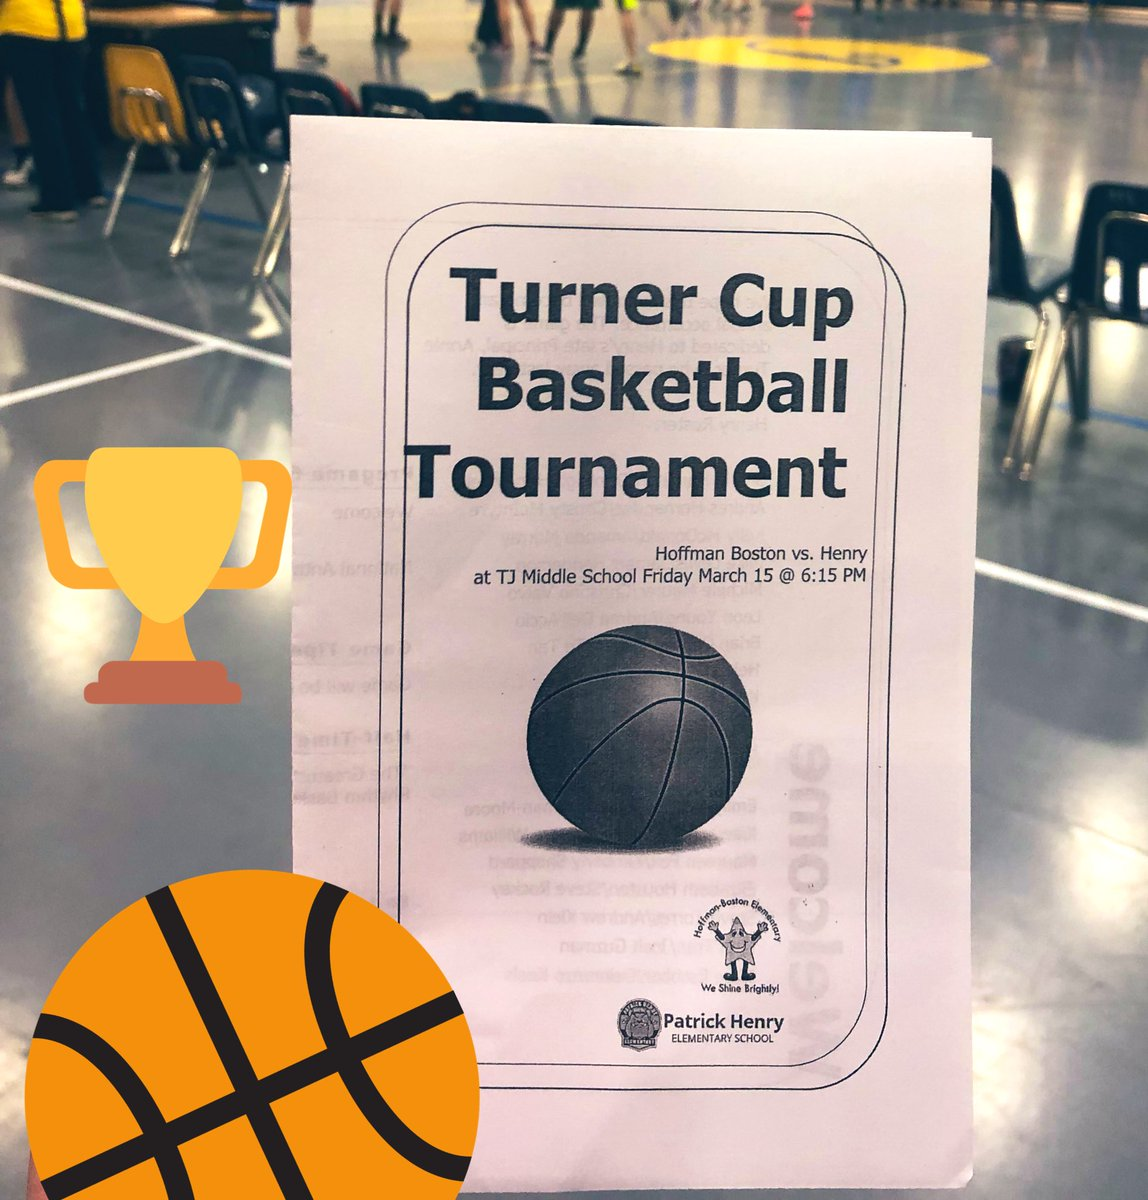 Wow First Annual Turner Cup! What an amazing game! <a target='_blank' href='http://search.twitter.com/search?q=hfbtweets'><a target='_blank' href='https://twitter.com/hashtag/hfbtweets?src=hash'>#hfbtweets</a></a> <a target='_blank' href='http://search.twitter.com/search?q=PHESBulldogs'><a target='_blank' href='https://twitter.com/hashtag/PHESBulldogs?src=hash'>#PHESBulldogs</a></a> <a target='_blank' href='http://twitter.com/APSVirginia'>@APSVirginia</a> <a target='_blank' href='http://twitter.com/APSHenryPTA'>@APSHenryPTA</a> <a target='_blank' href='http://twitter.com/APSHPEAthletics'>@APSHPEAthletics</a> <a target='_blank' href='http://twitter.com/APSHenryPE'>@APSHenryPE</a> <a target='_blank' href='http://twitter.com/HFBpe'>@HFBpe</a> <a target='_blank' href='http://twitter.com/HFBAllStars'>@HFBAllStars</a> <a target='_blank' href='http://twitter.com/APSHenryMusic'>@APSHenryMusic</a> <a target='_blank' href='http://twitter.com/APSHenrySnyder'>@APSHenrySnyder</a> <a target='_blank' href='http://twitter.com/MsEnglishGifted'>@MsEnglishGifted</a> <a target='_blank' href='https://t.co/2ORqWp00Iw'>https://t.co/2ORqWp00Iw</a>